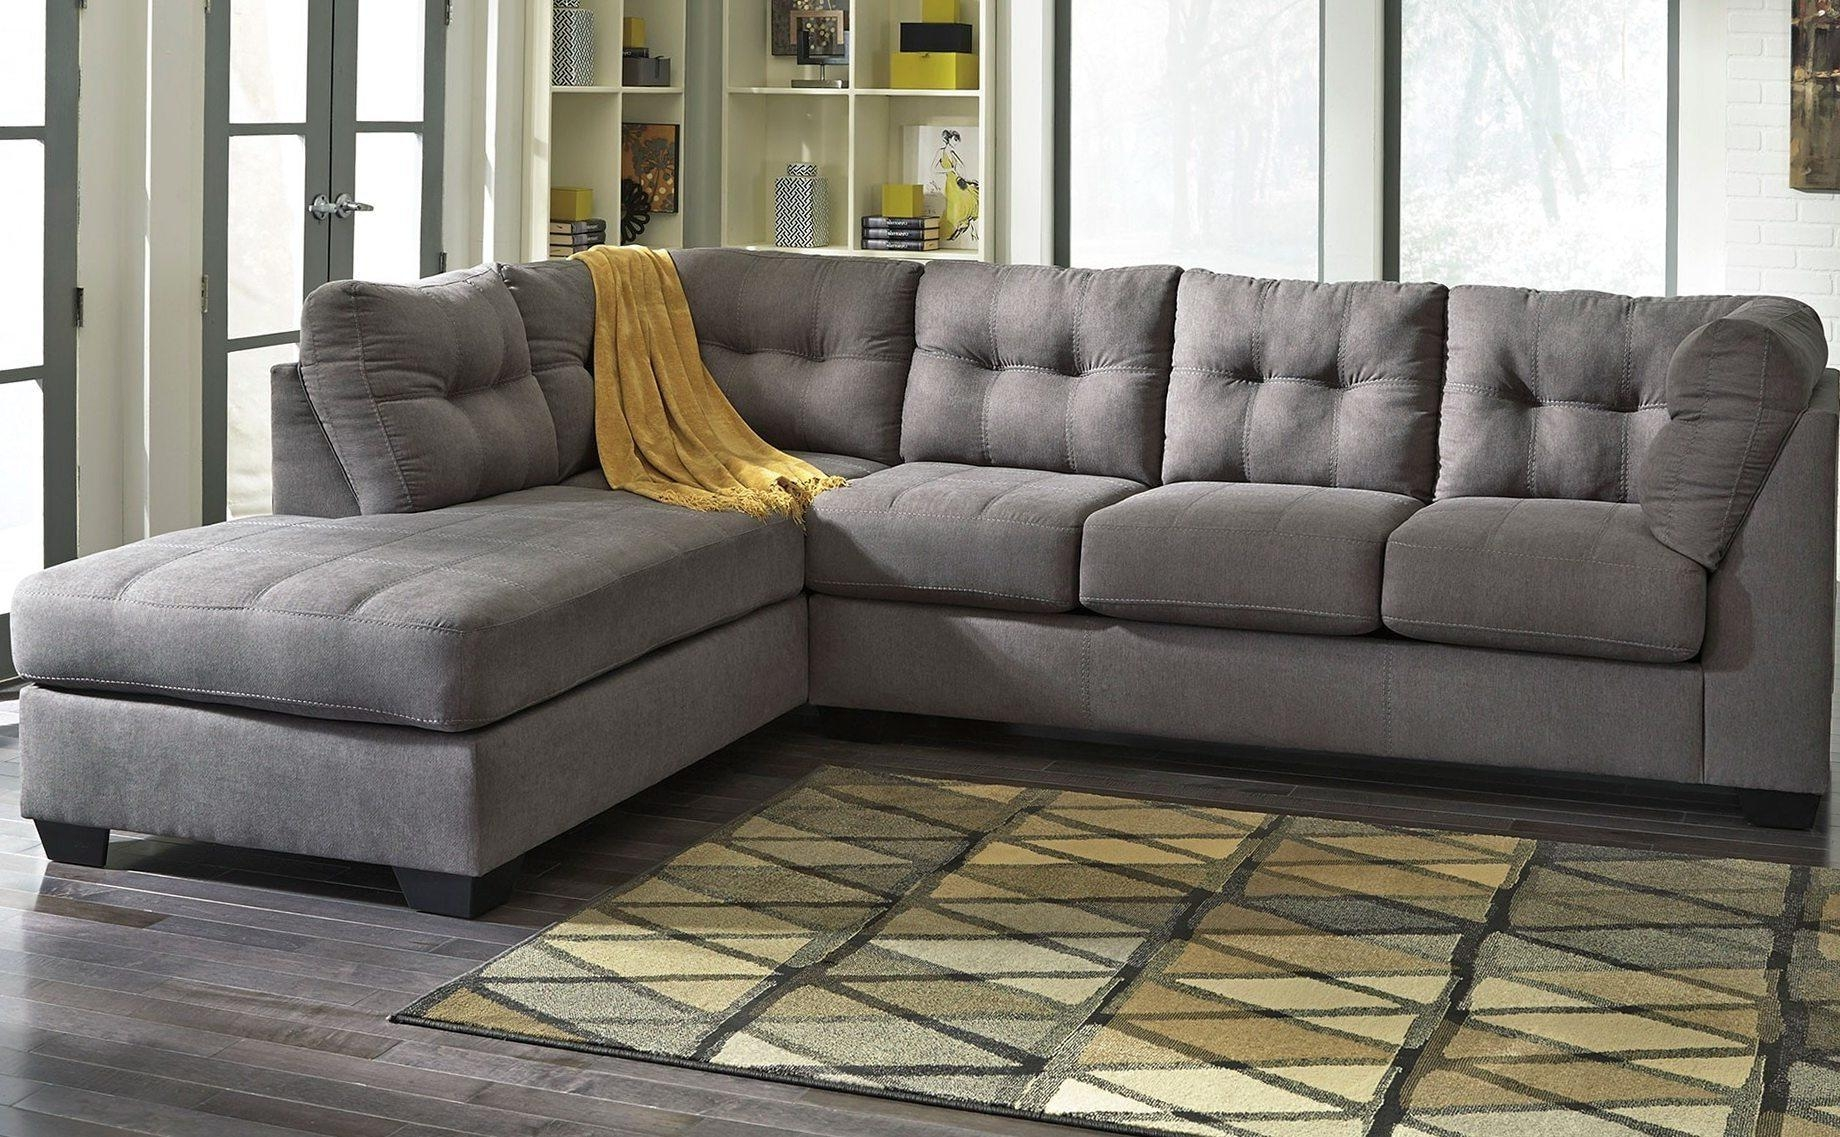 Sofas Center : Corey Gray Sectional Charcoal Couch With Chaise Two Pertaining To Charcoal Gray Sectional Sofas (View 6 of 20)